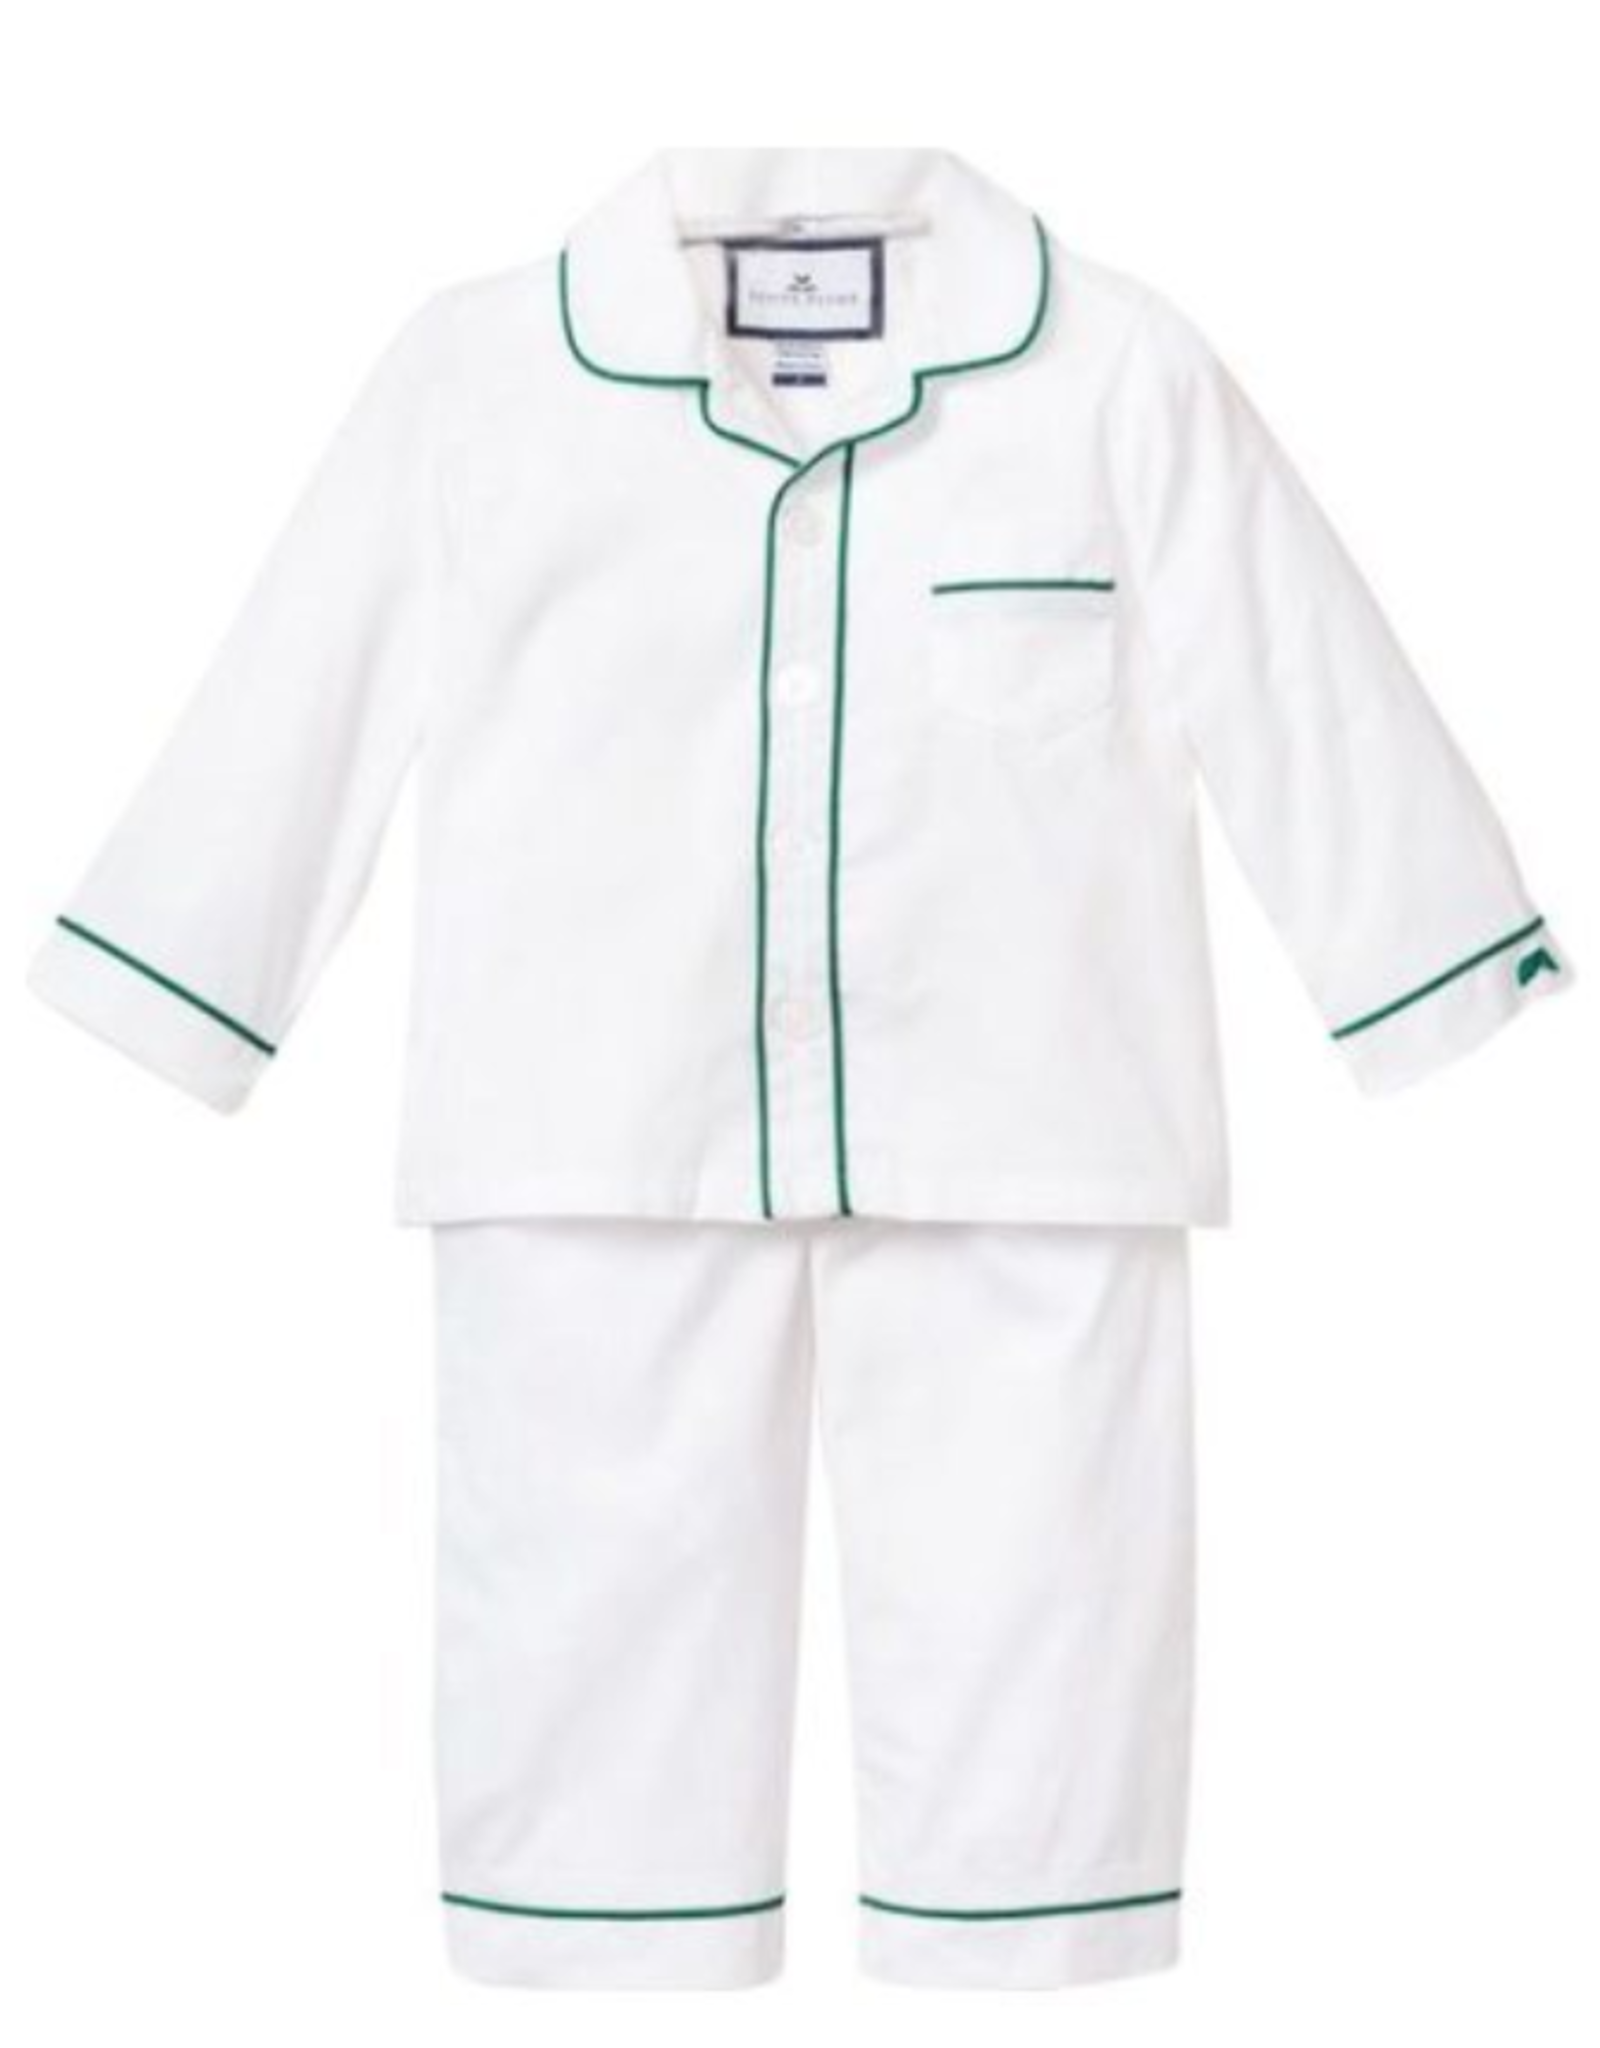 Petite Plume White PJs with Green Double Piping